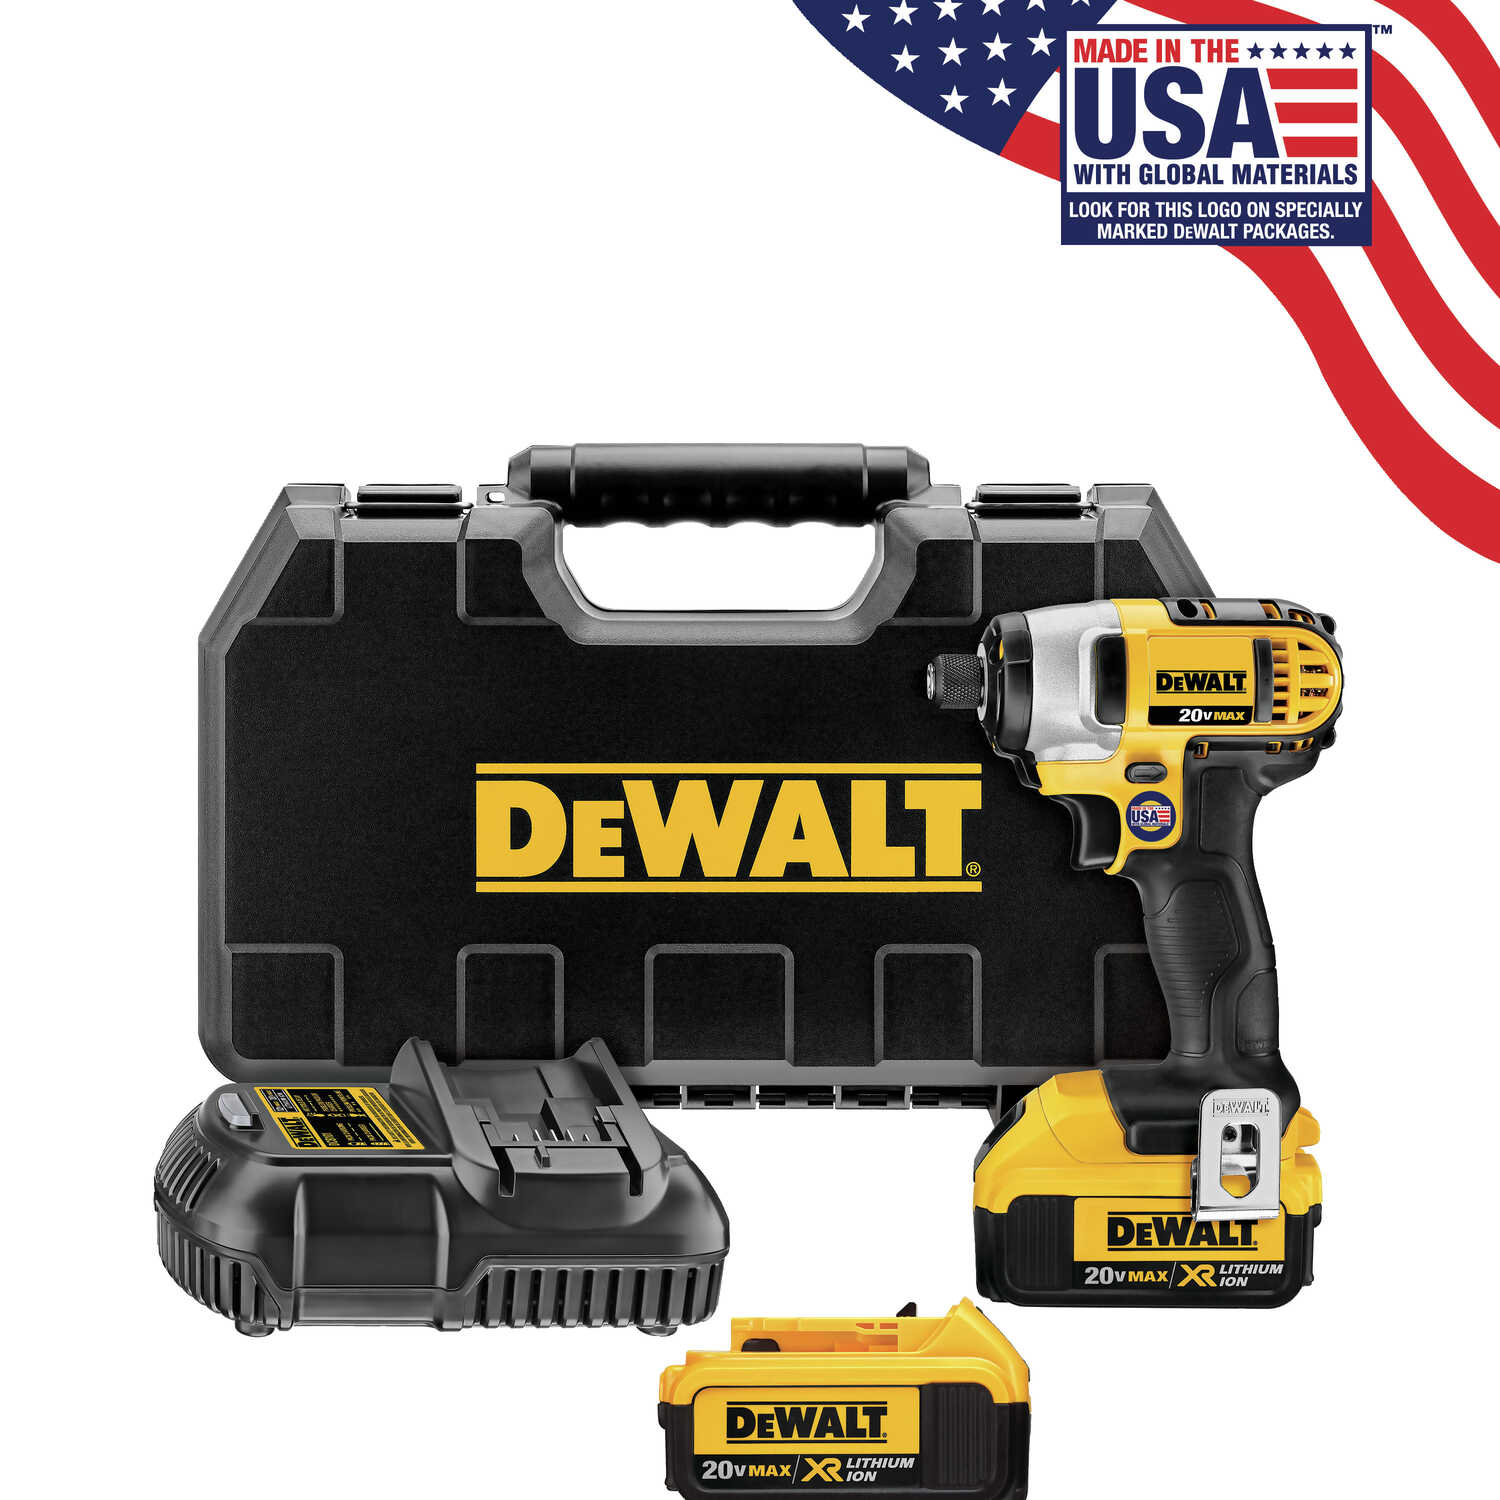 DeWalt  20V MAX  1/4 in. Hex  Cordless  Impact Driver  Kit 1400 in-lb